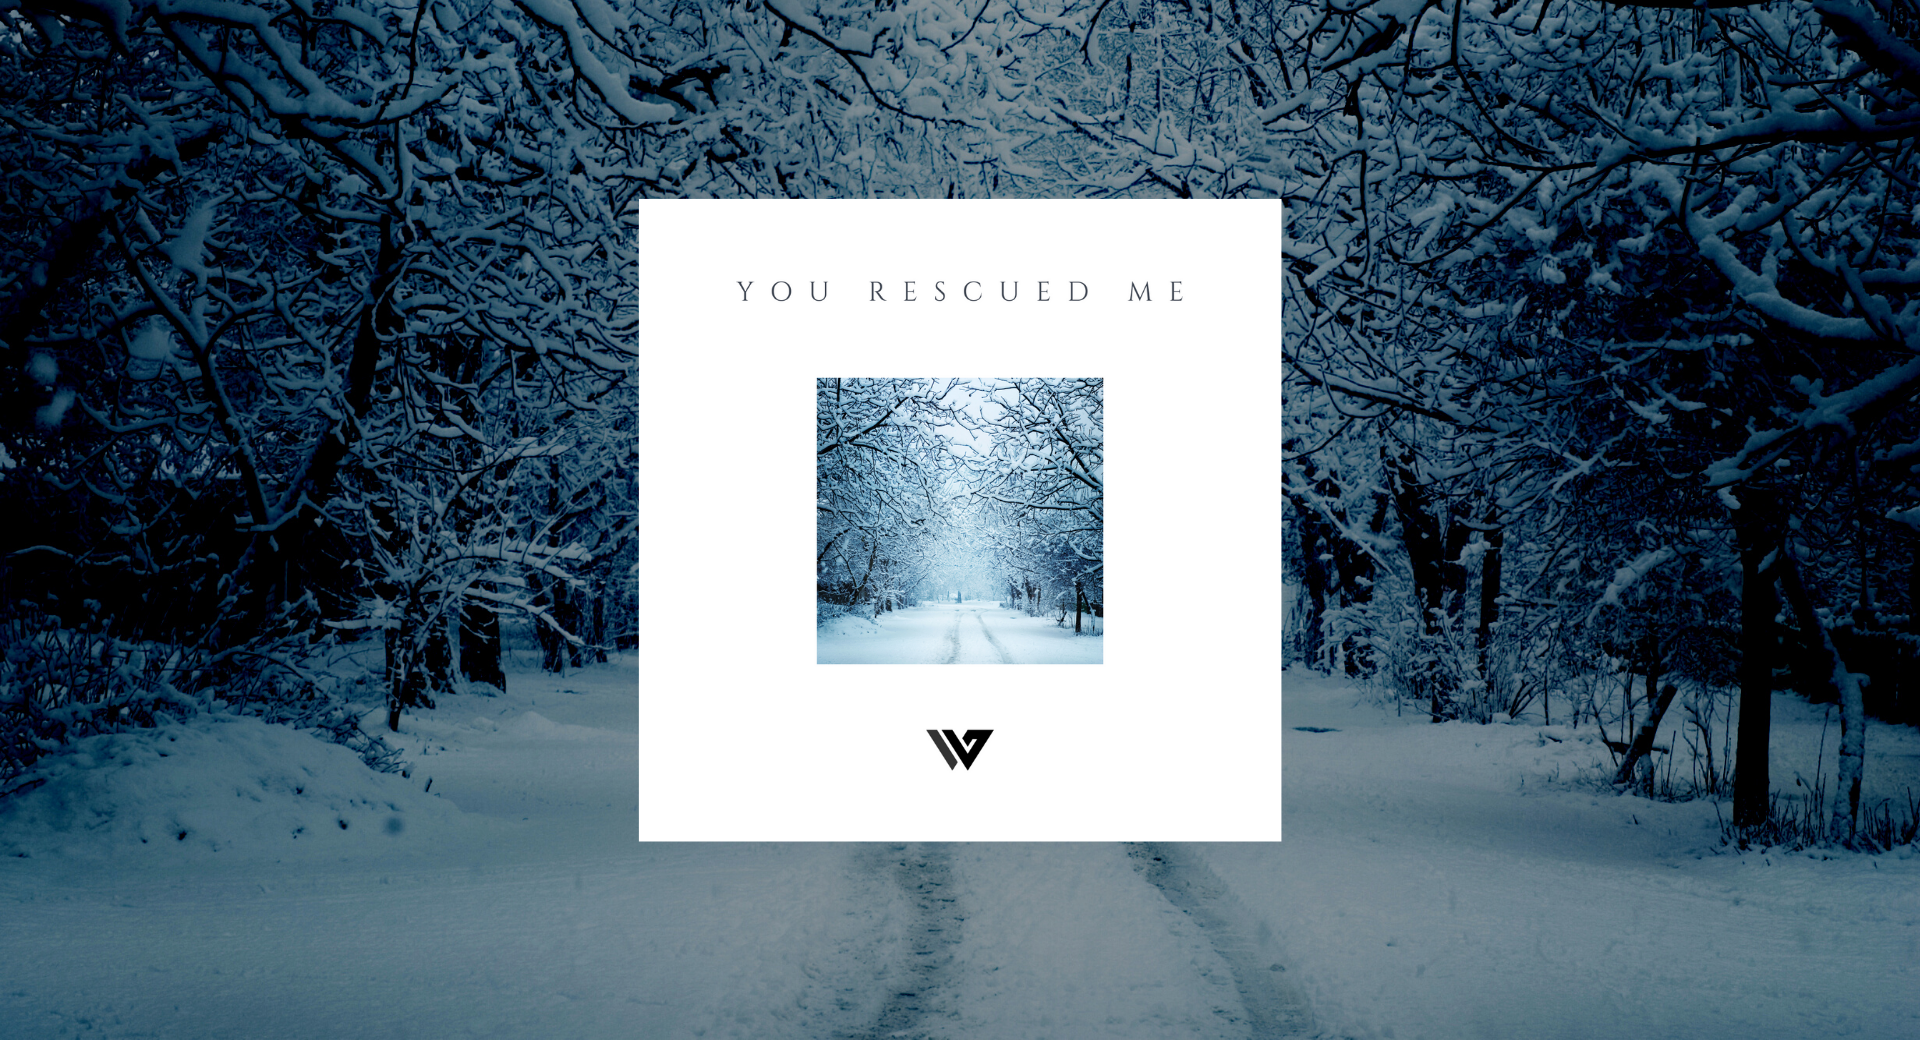 <p>One Seed Worship is excited to kick off 2021 with the release of their latest single &ldquo;You Rescued Me&rdquo; available on all digital platforms.&nbsp; This is the third single from One Seed Worship.&nbsp; The group was formed in 2018 and is the worship ministry of One Seed Church.&nbsp; One Seed Worship plans to release their first official album by the end of 2021.</p>